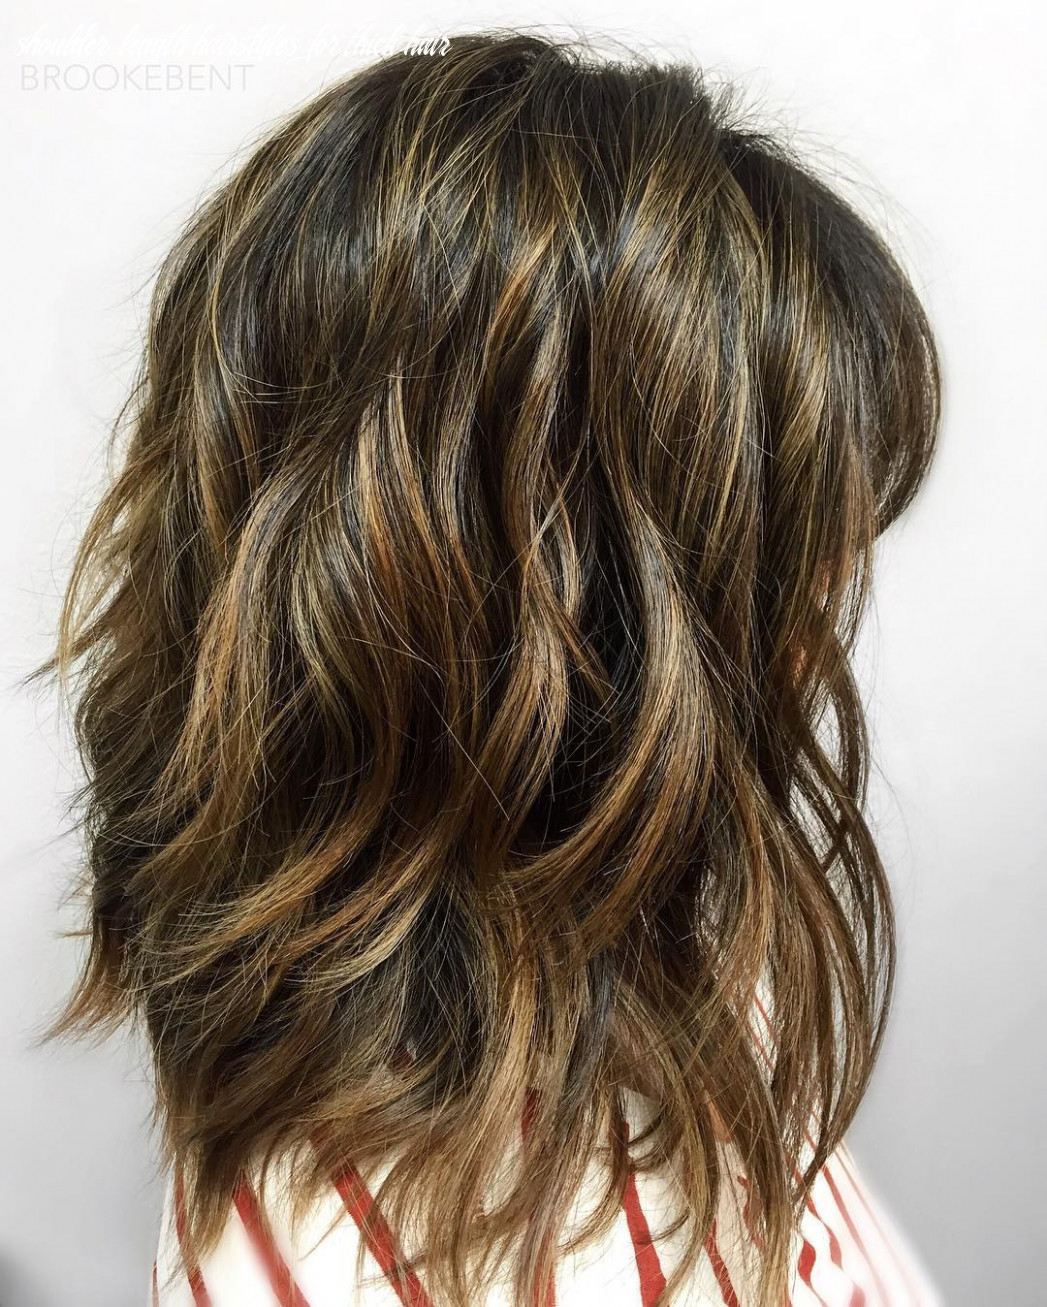 Layered hairstyles shoulder length thick hair shoulder length hairstyles for thick hair